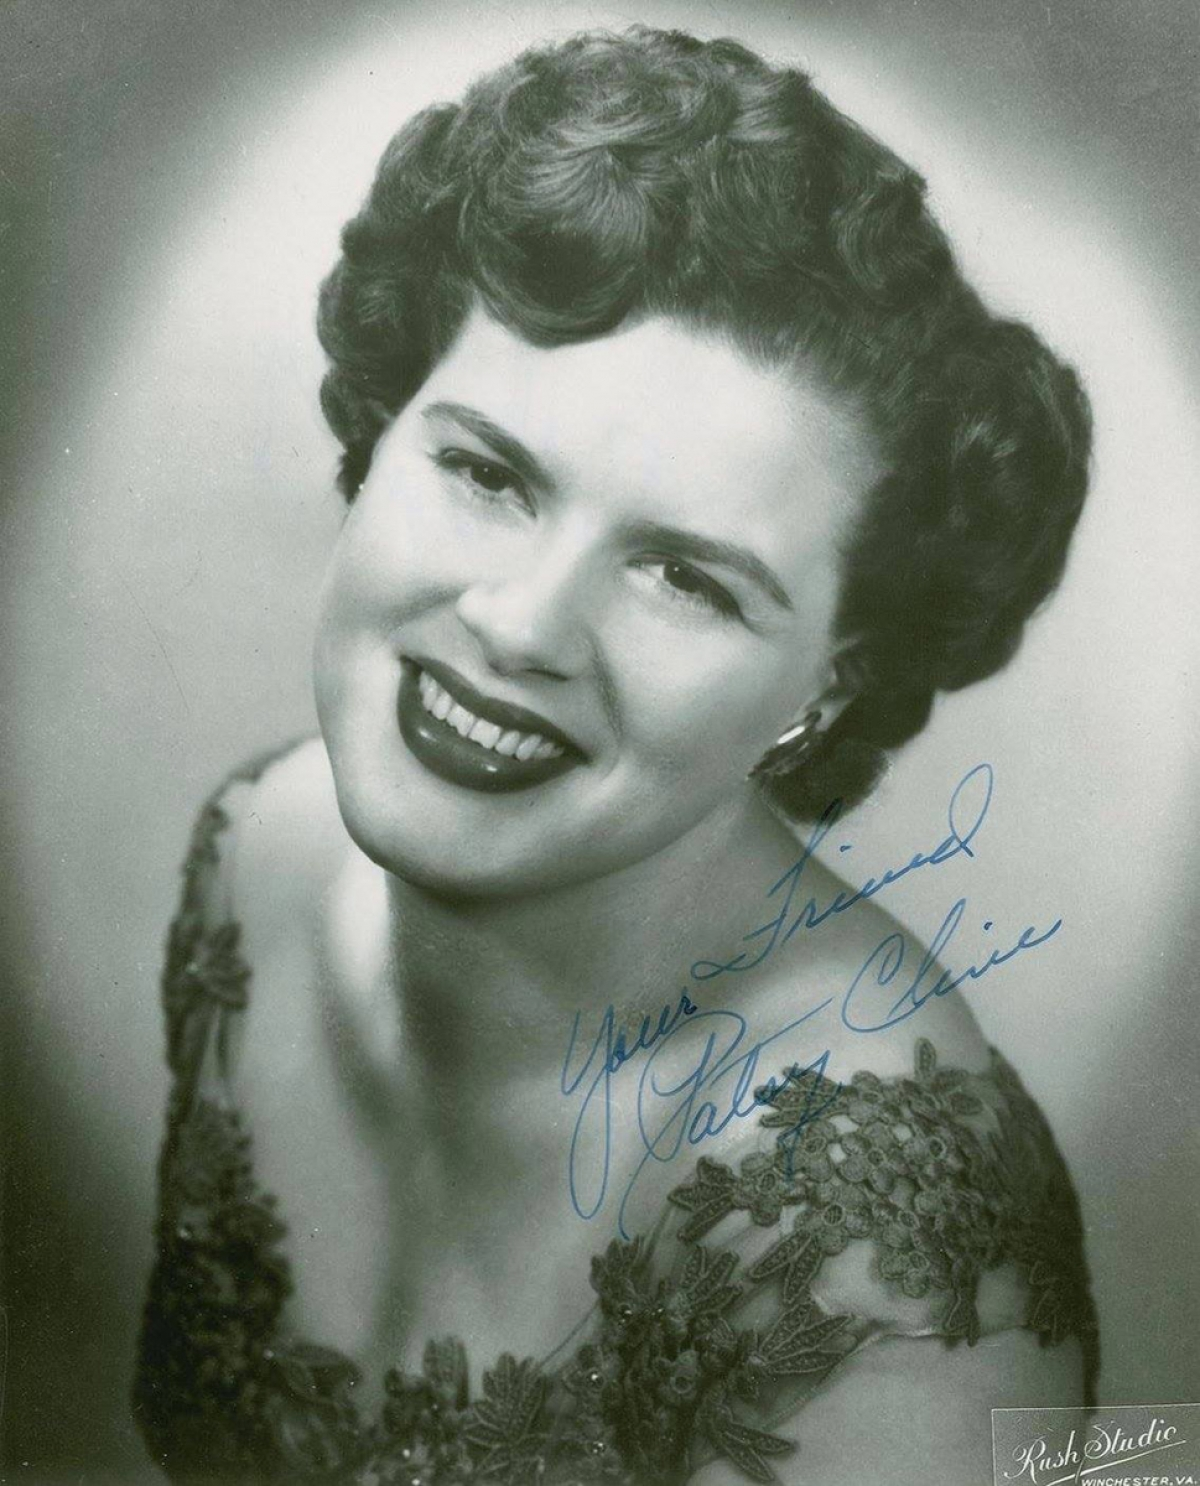 Patsy Cline was born Virginia Patterson Hensley on September 8, 1932, in Winchester, Virginia and at a young age began traveling around locally singing to help support her family. A member of a band she was in suggested that she change her name so she decided to use her middle name, becoming known as Patsy Cline.  Patsy's young career hit a turning point in 1957 when she landed a spot on Arthur Godfrey's Talent Scouts show.  Patsy moved to Nashville to properly pursue her career in 1959.  In the early 1960s, Patsy enjoyed great success on the country and pop charts. She made a way for herself in a predominately male world, and in doing so, paved the way for many of the female artists that followed her. She is considered one of country music's greatest vocalists and after her death in 1963 has received too numerous awards to be listed.  Her Greatest Hits album sold over 10 million copies worldwide and spent more than 700 weeks on the Billboard charts.